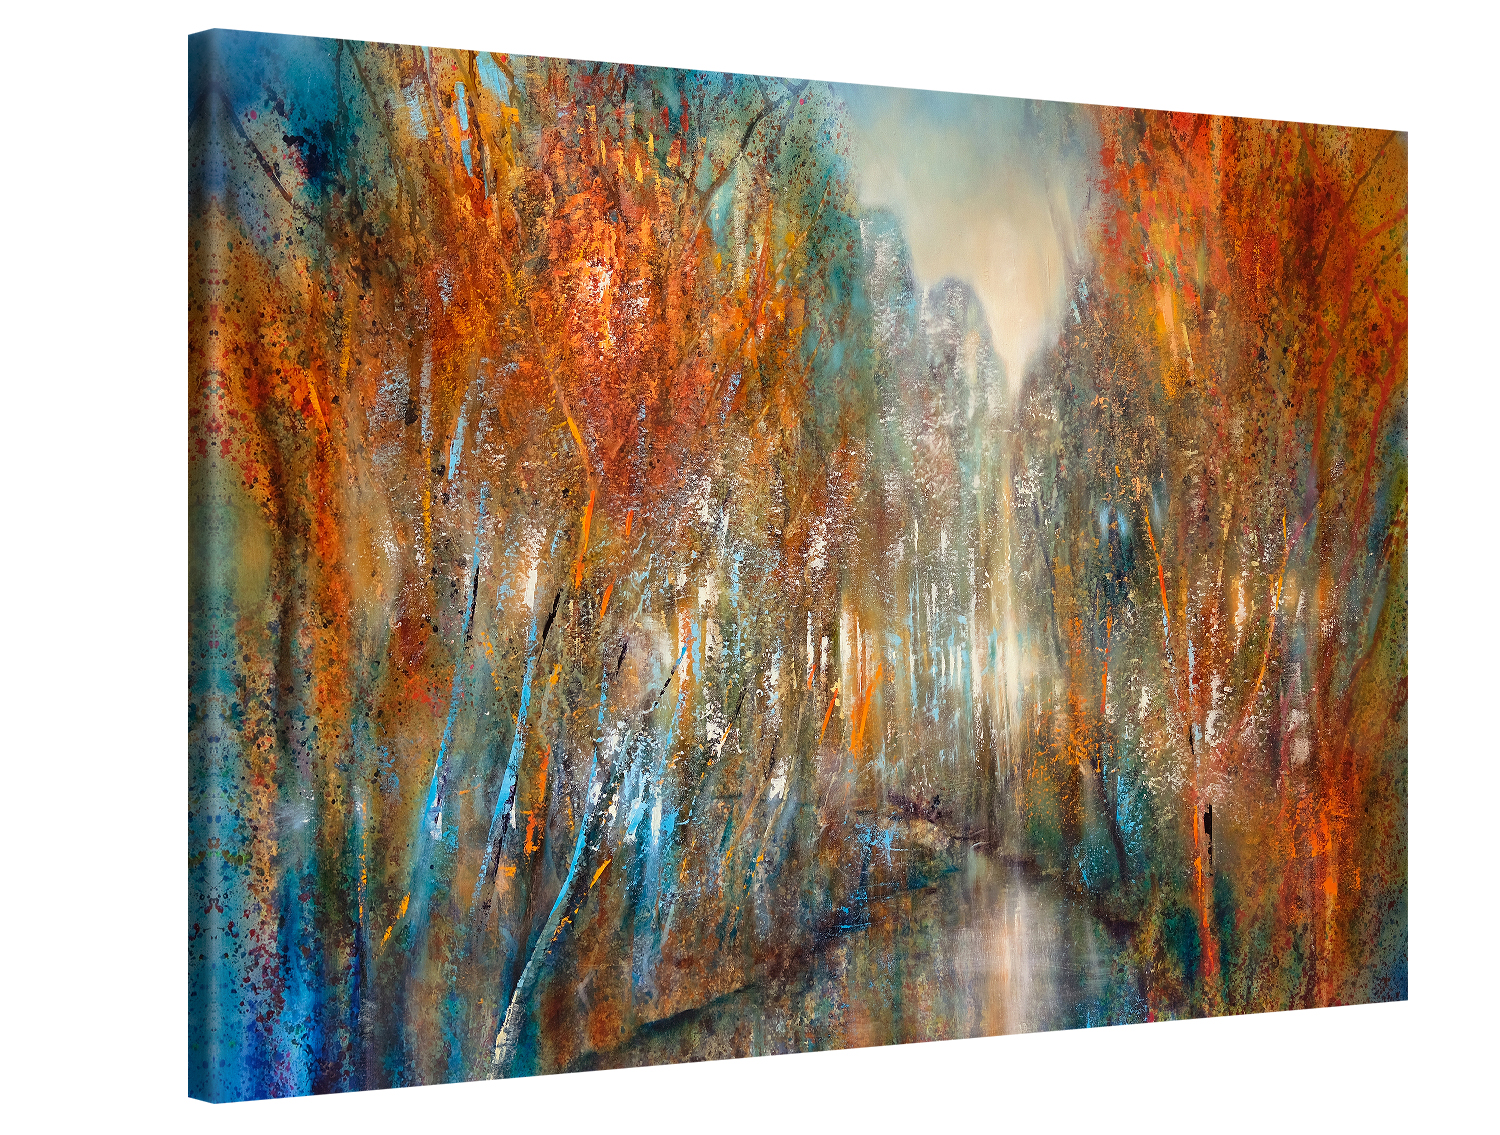 Forest River - 60x40 cm - Annette Schmucker #e13195